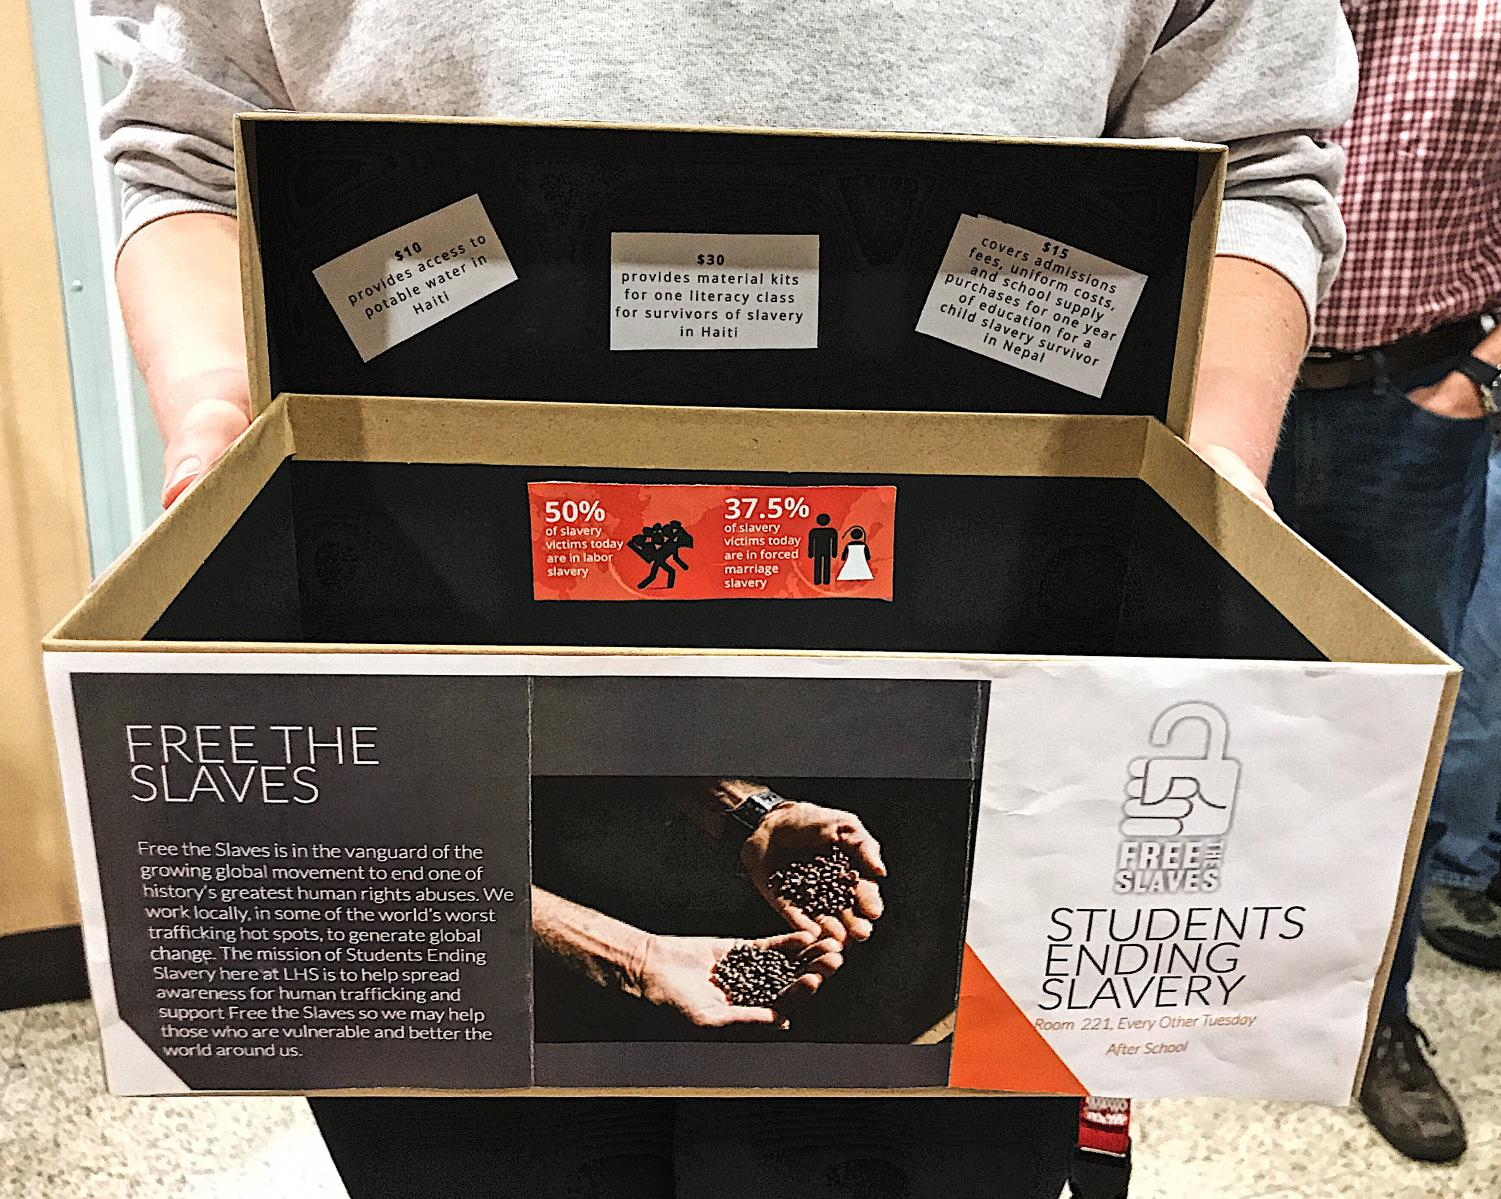 At the school musical earlier this month, which included themes like enslavement and oppression, the members of Students Ending Slavery took the opportunity to educate the audience on present-day slavery and raise money for the club.